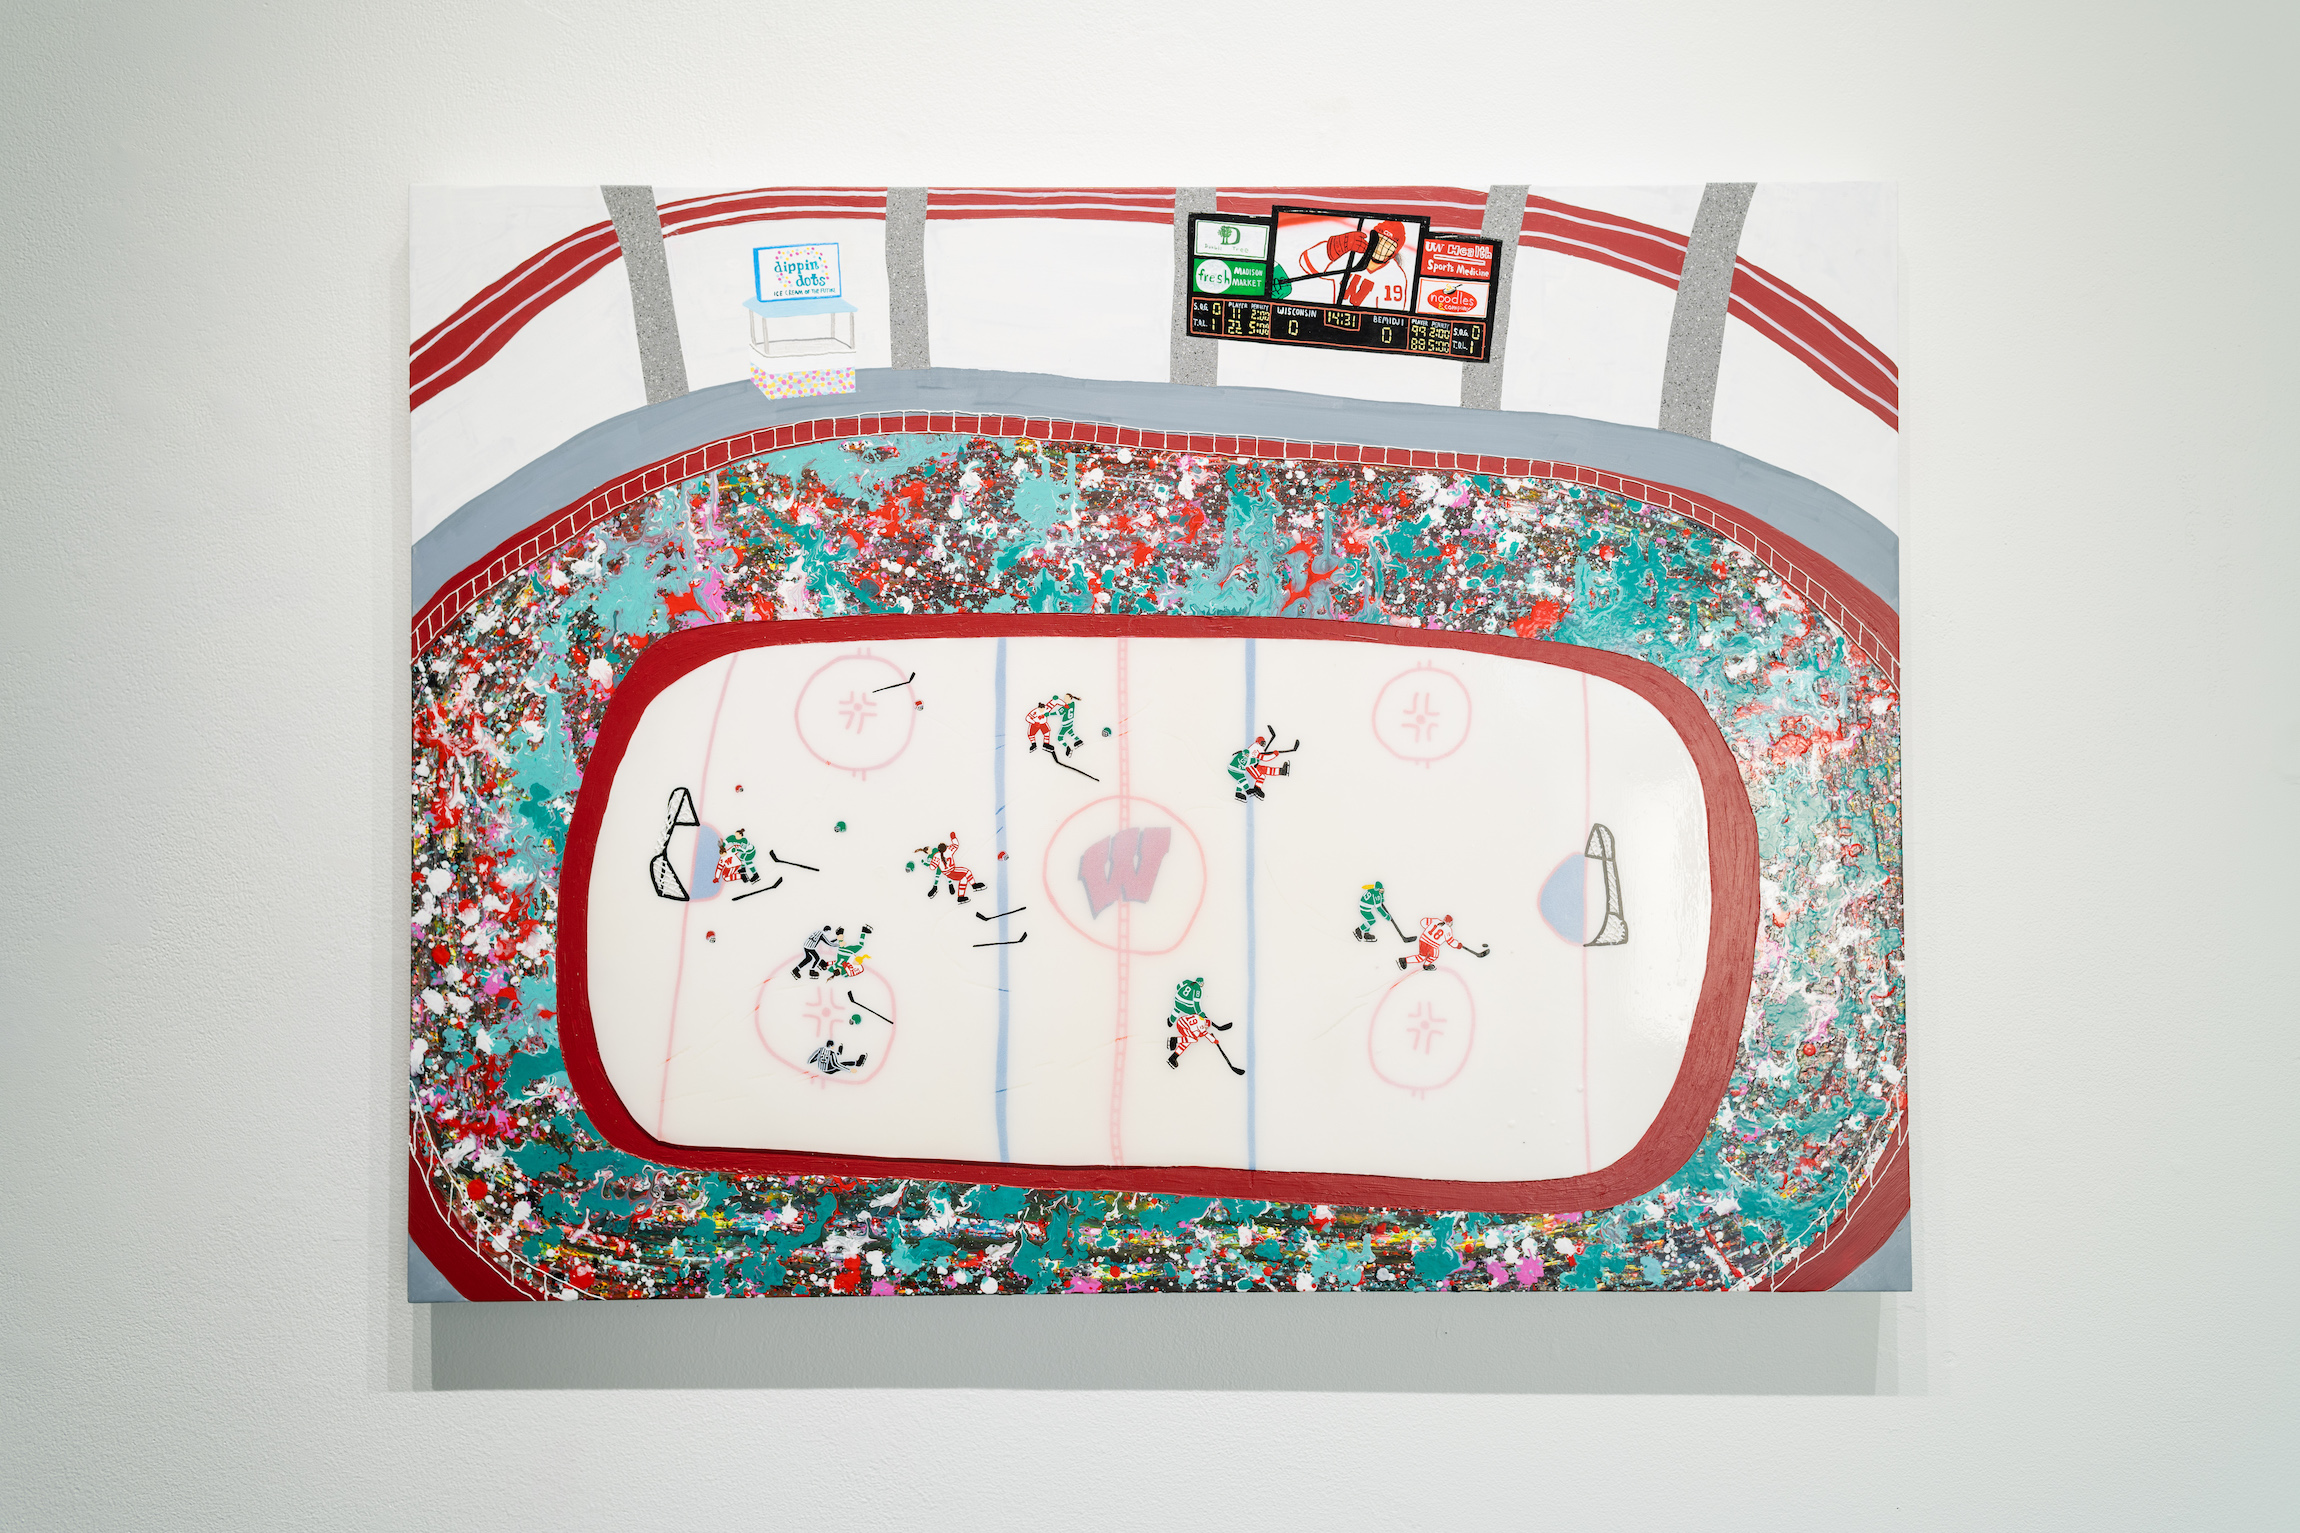 """Empty Netter,"" 2019, painting from James Pederson's Master of Fine Arts exhibition Rules of Engagement at the Gallery 7 of the Humanities Building, University of Wisconsin-Madison. Photography by Kyle Herrera."